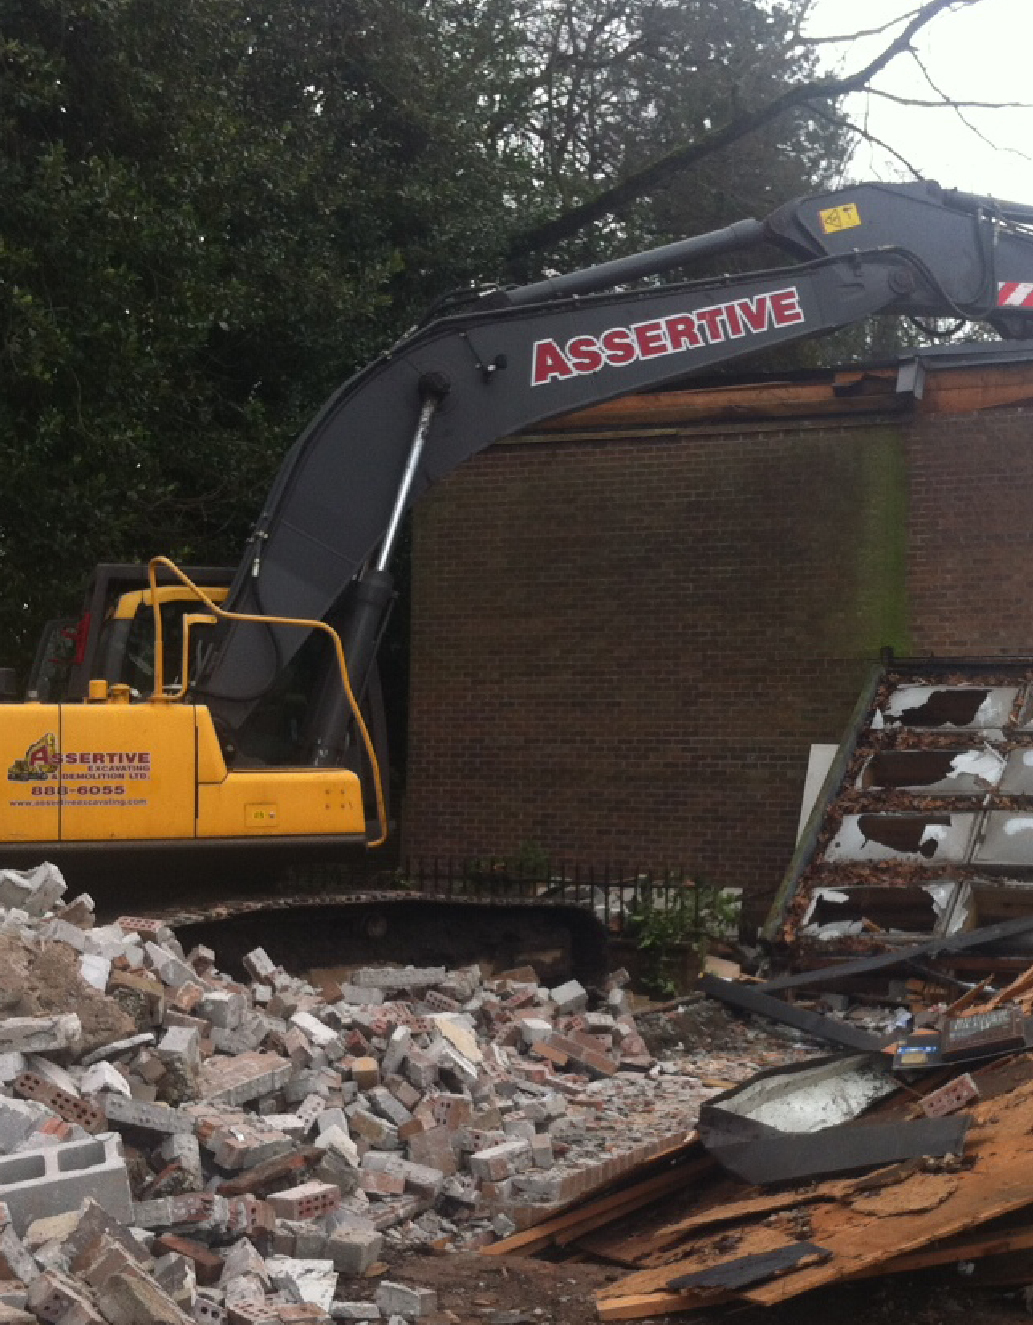 Assertive_Excavating___Demolition_524110155